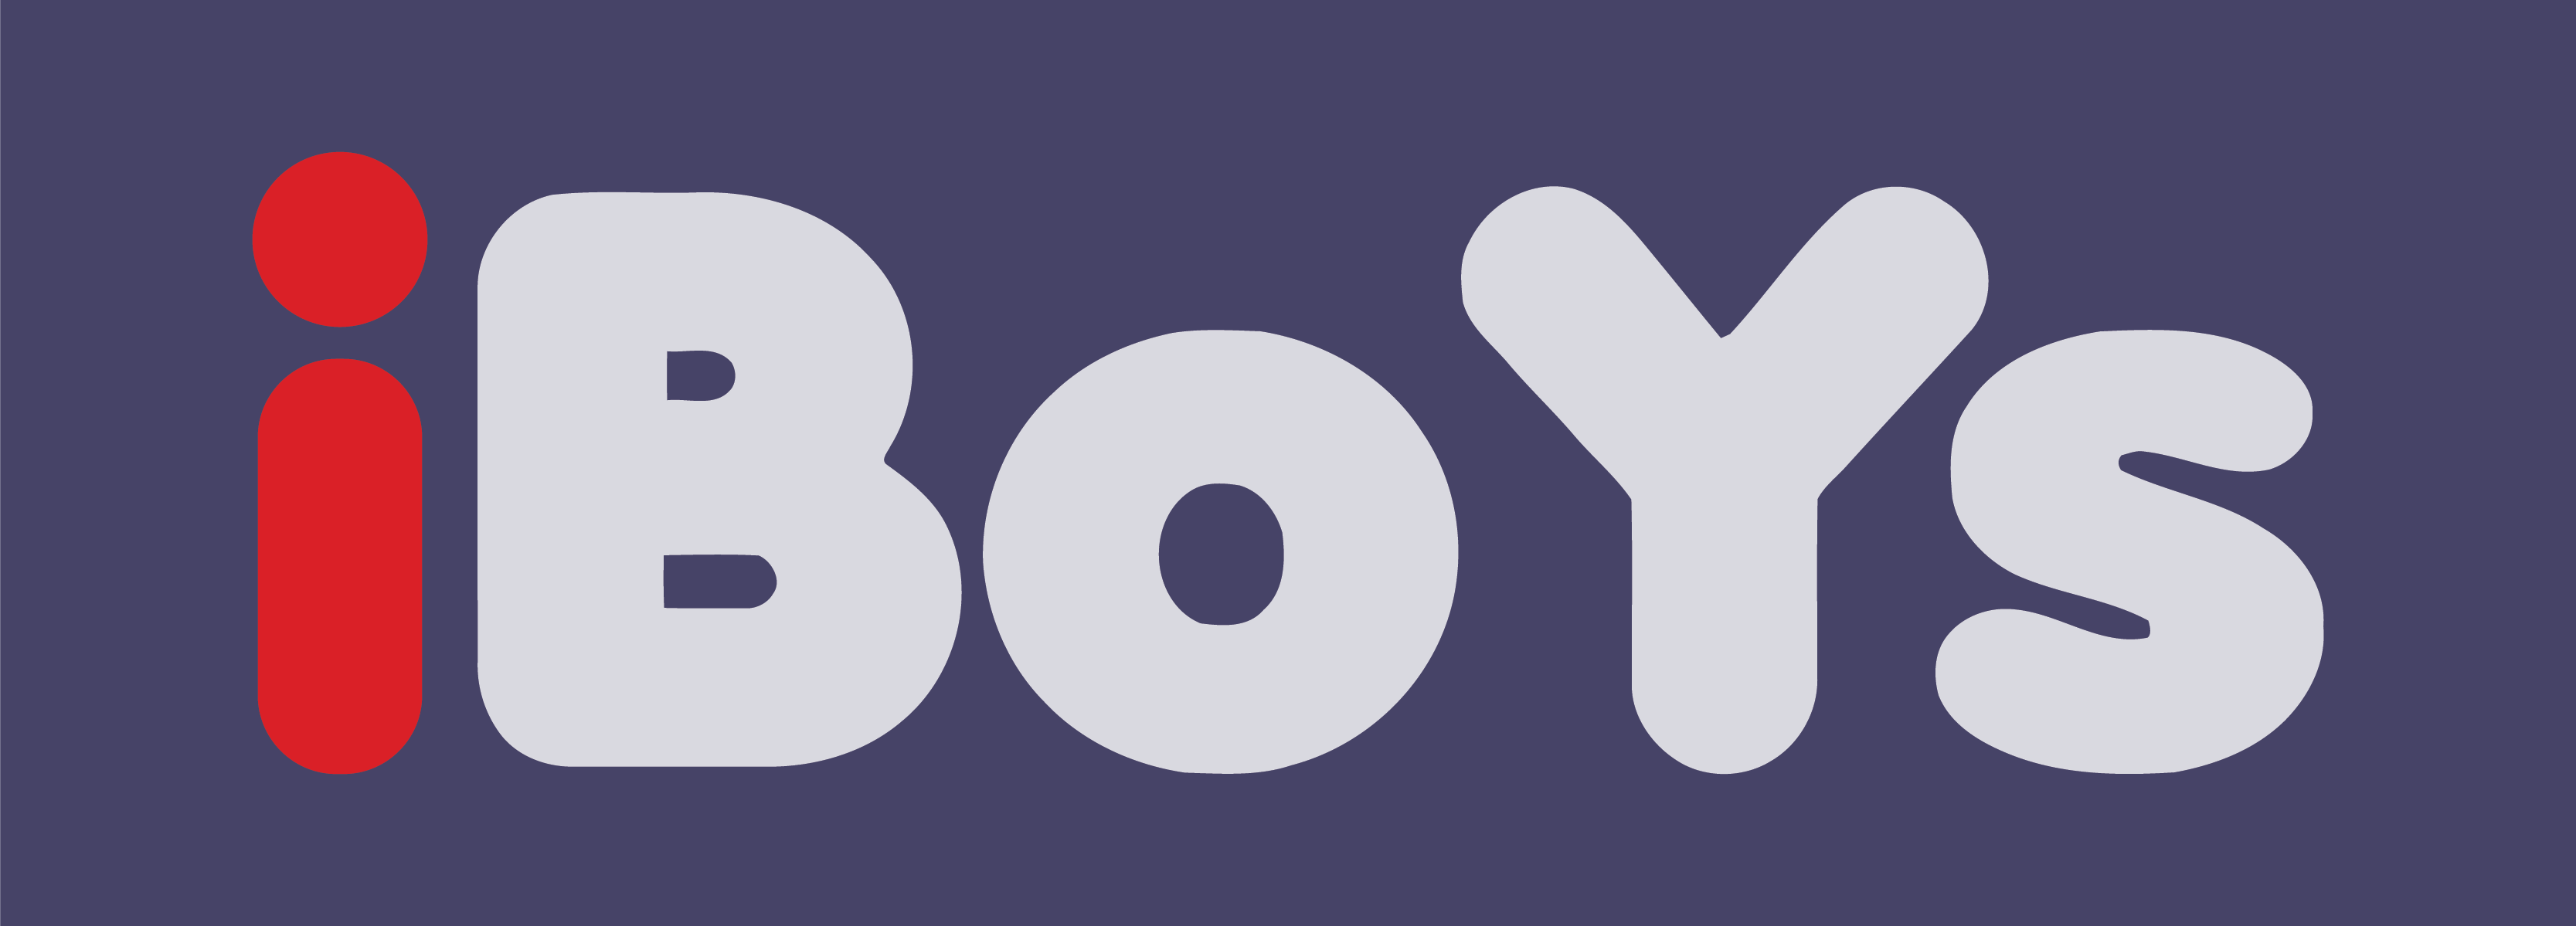 iBoys Logo